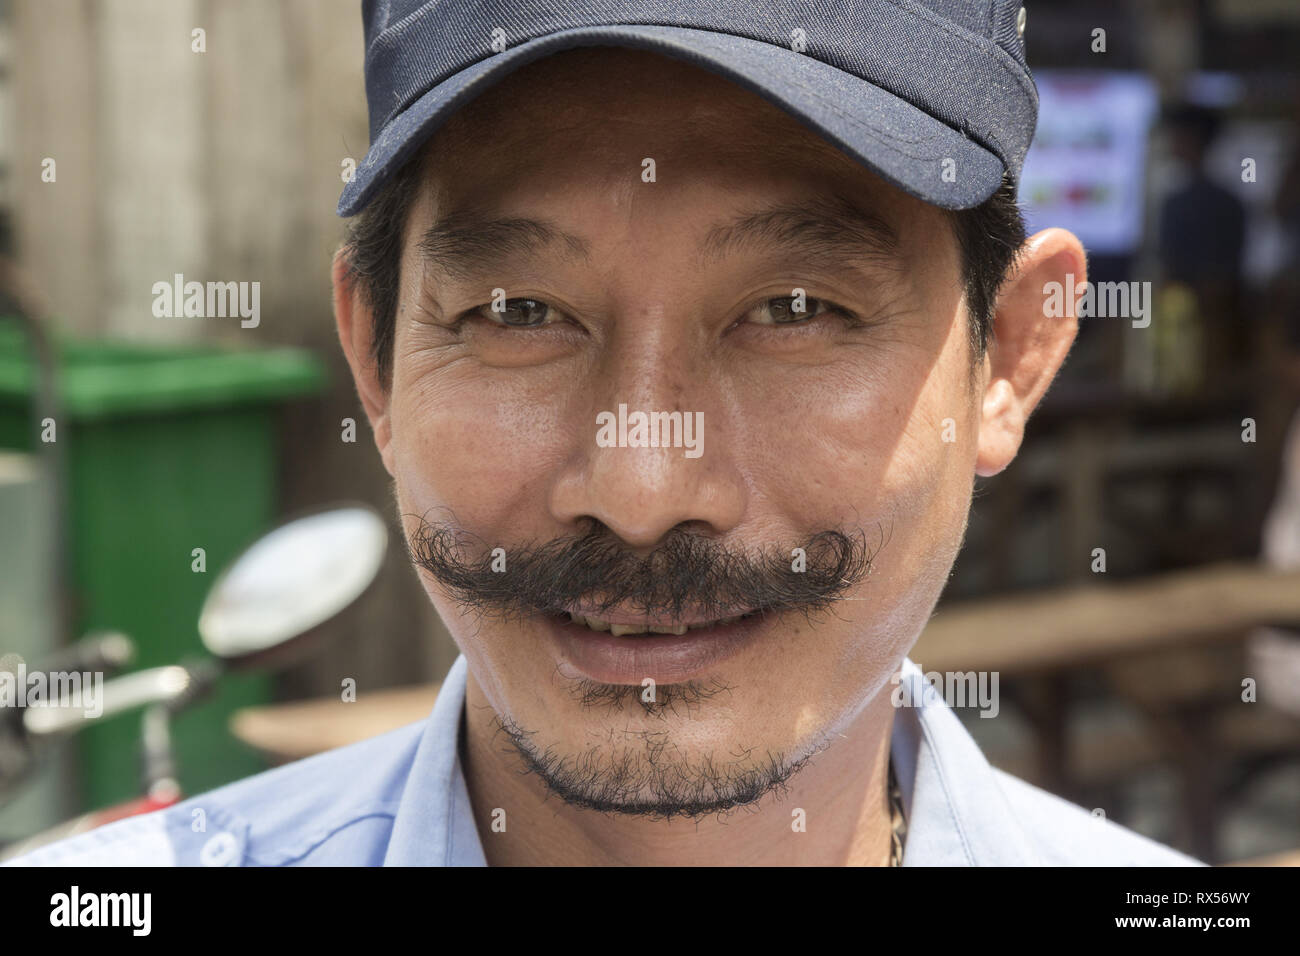 Portrait of the Vietnamese man - Stock Image